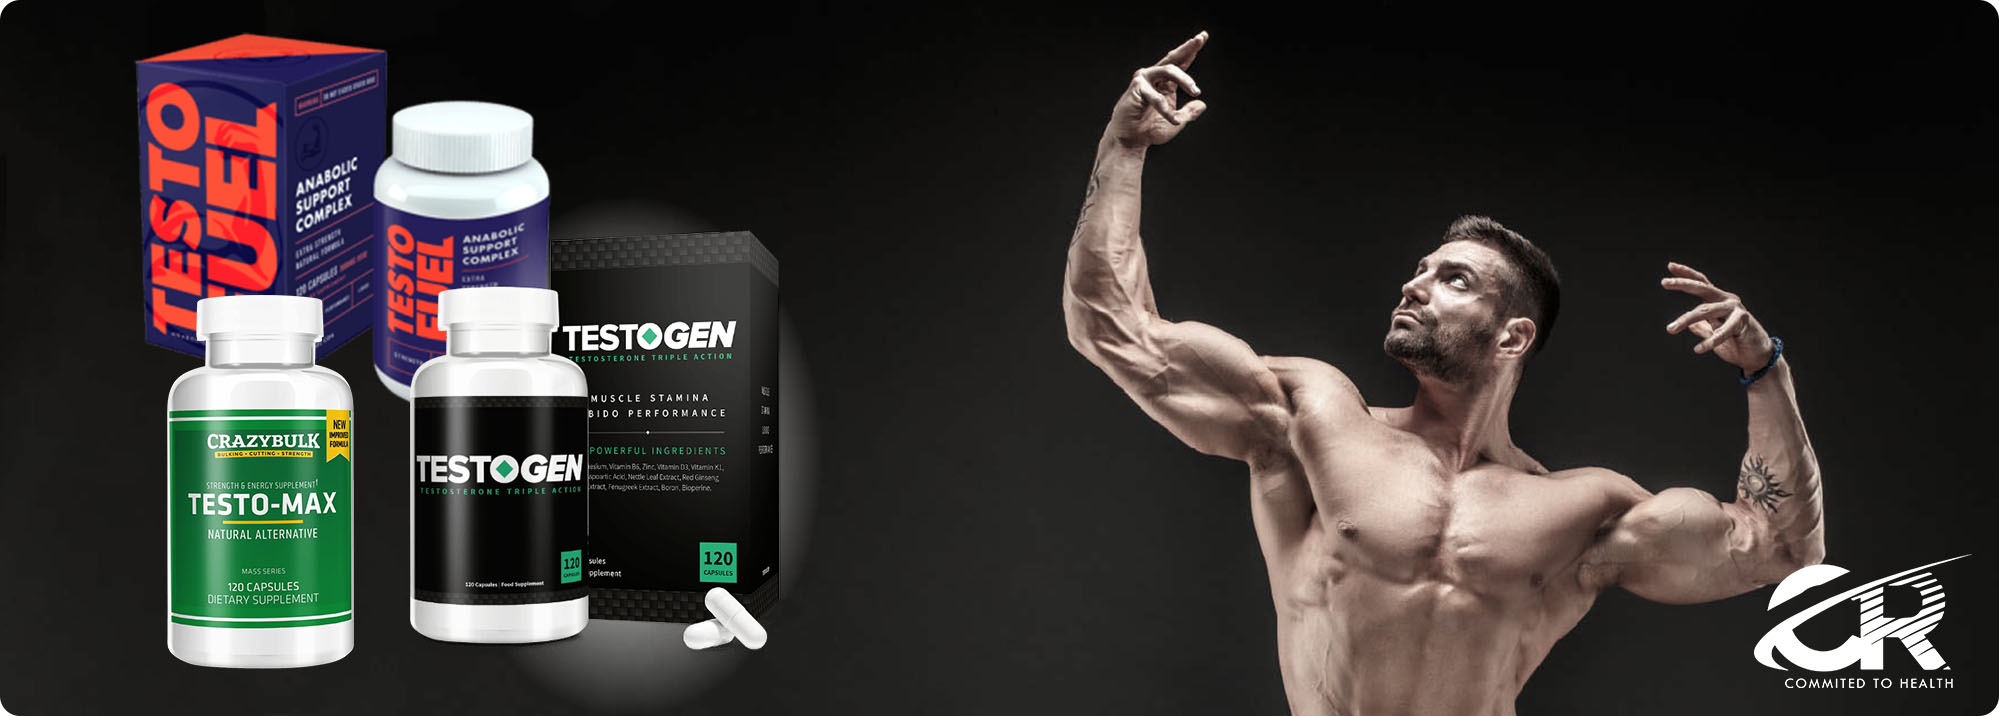 3 best Testosterone Booster Supplement in 2020